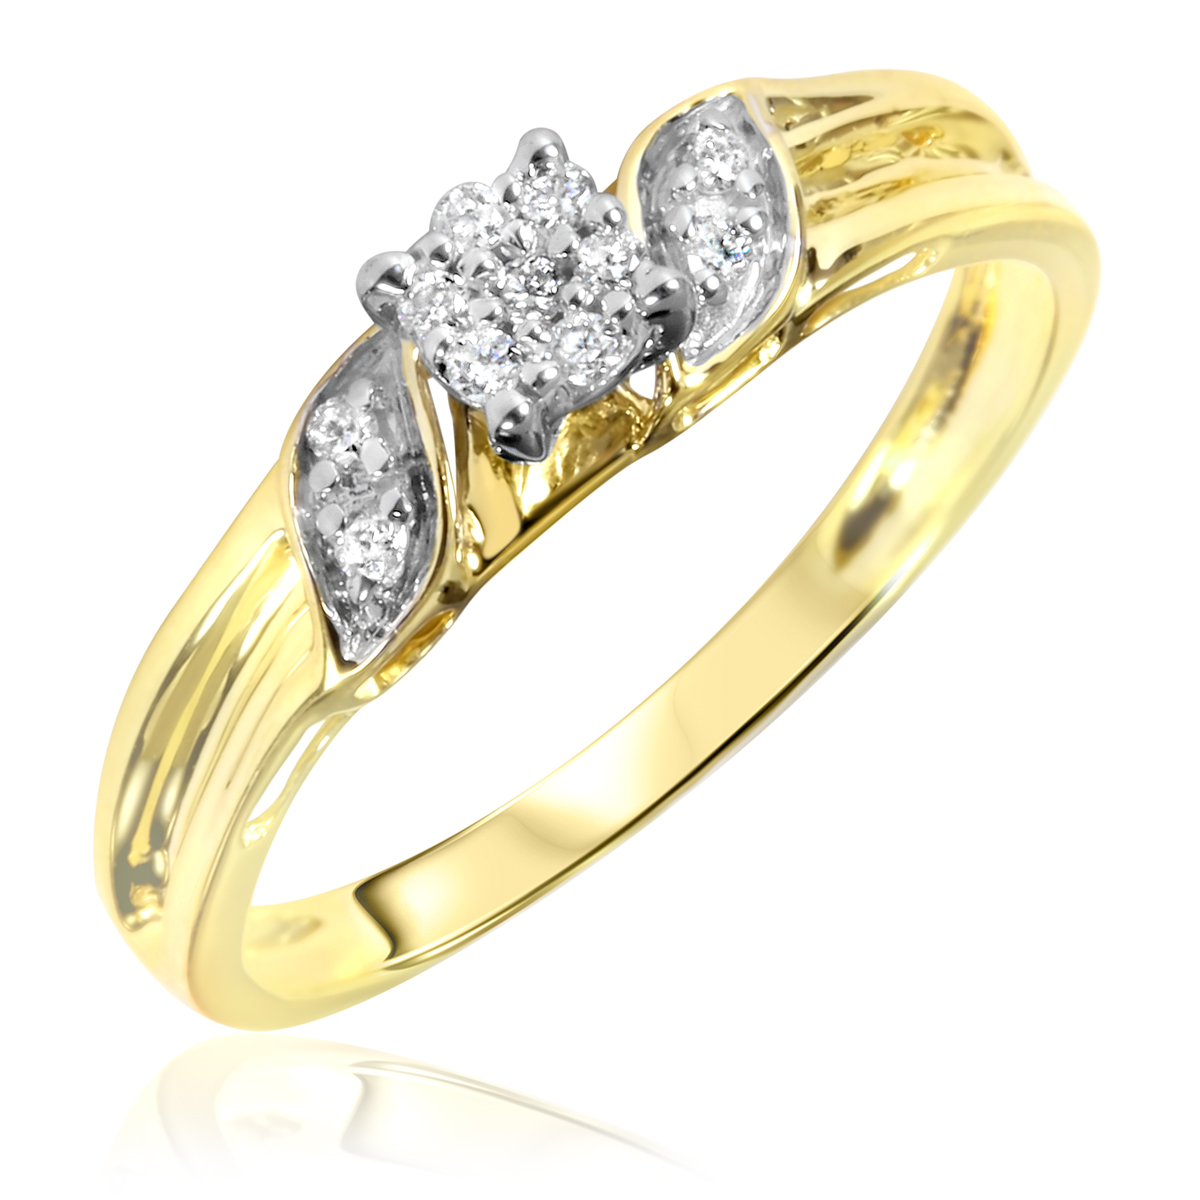 1/10 Carat T.W. Round Cut Diamond Women's Engagement Ring 10K Yellow Gold- Size